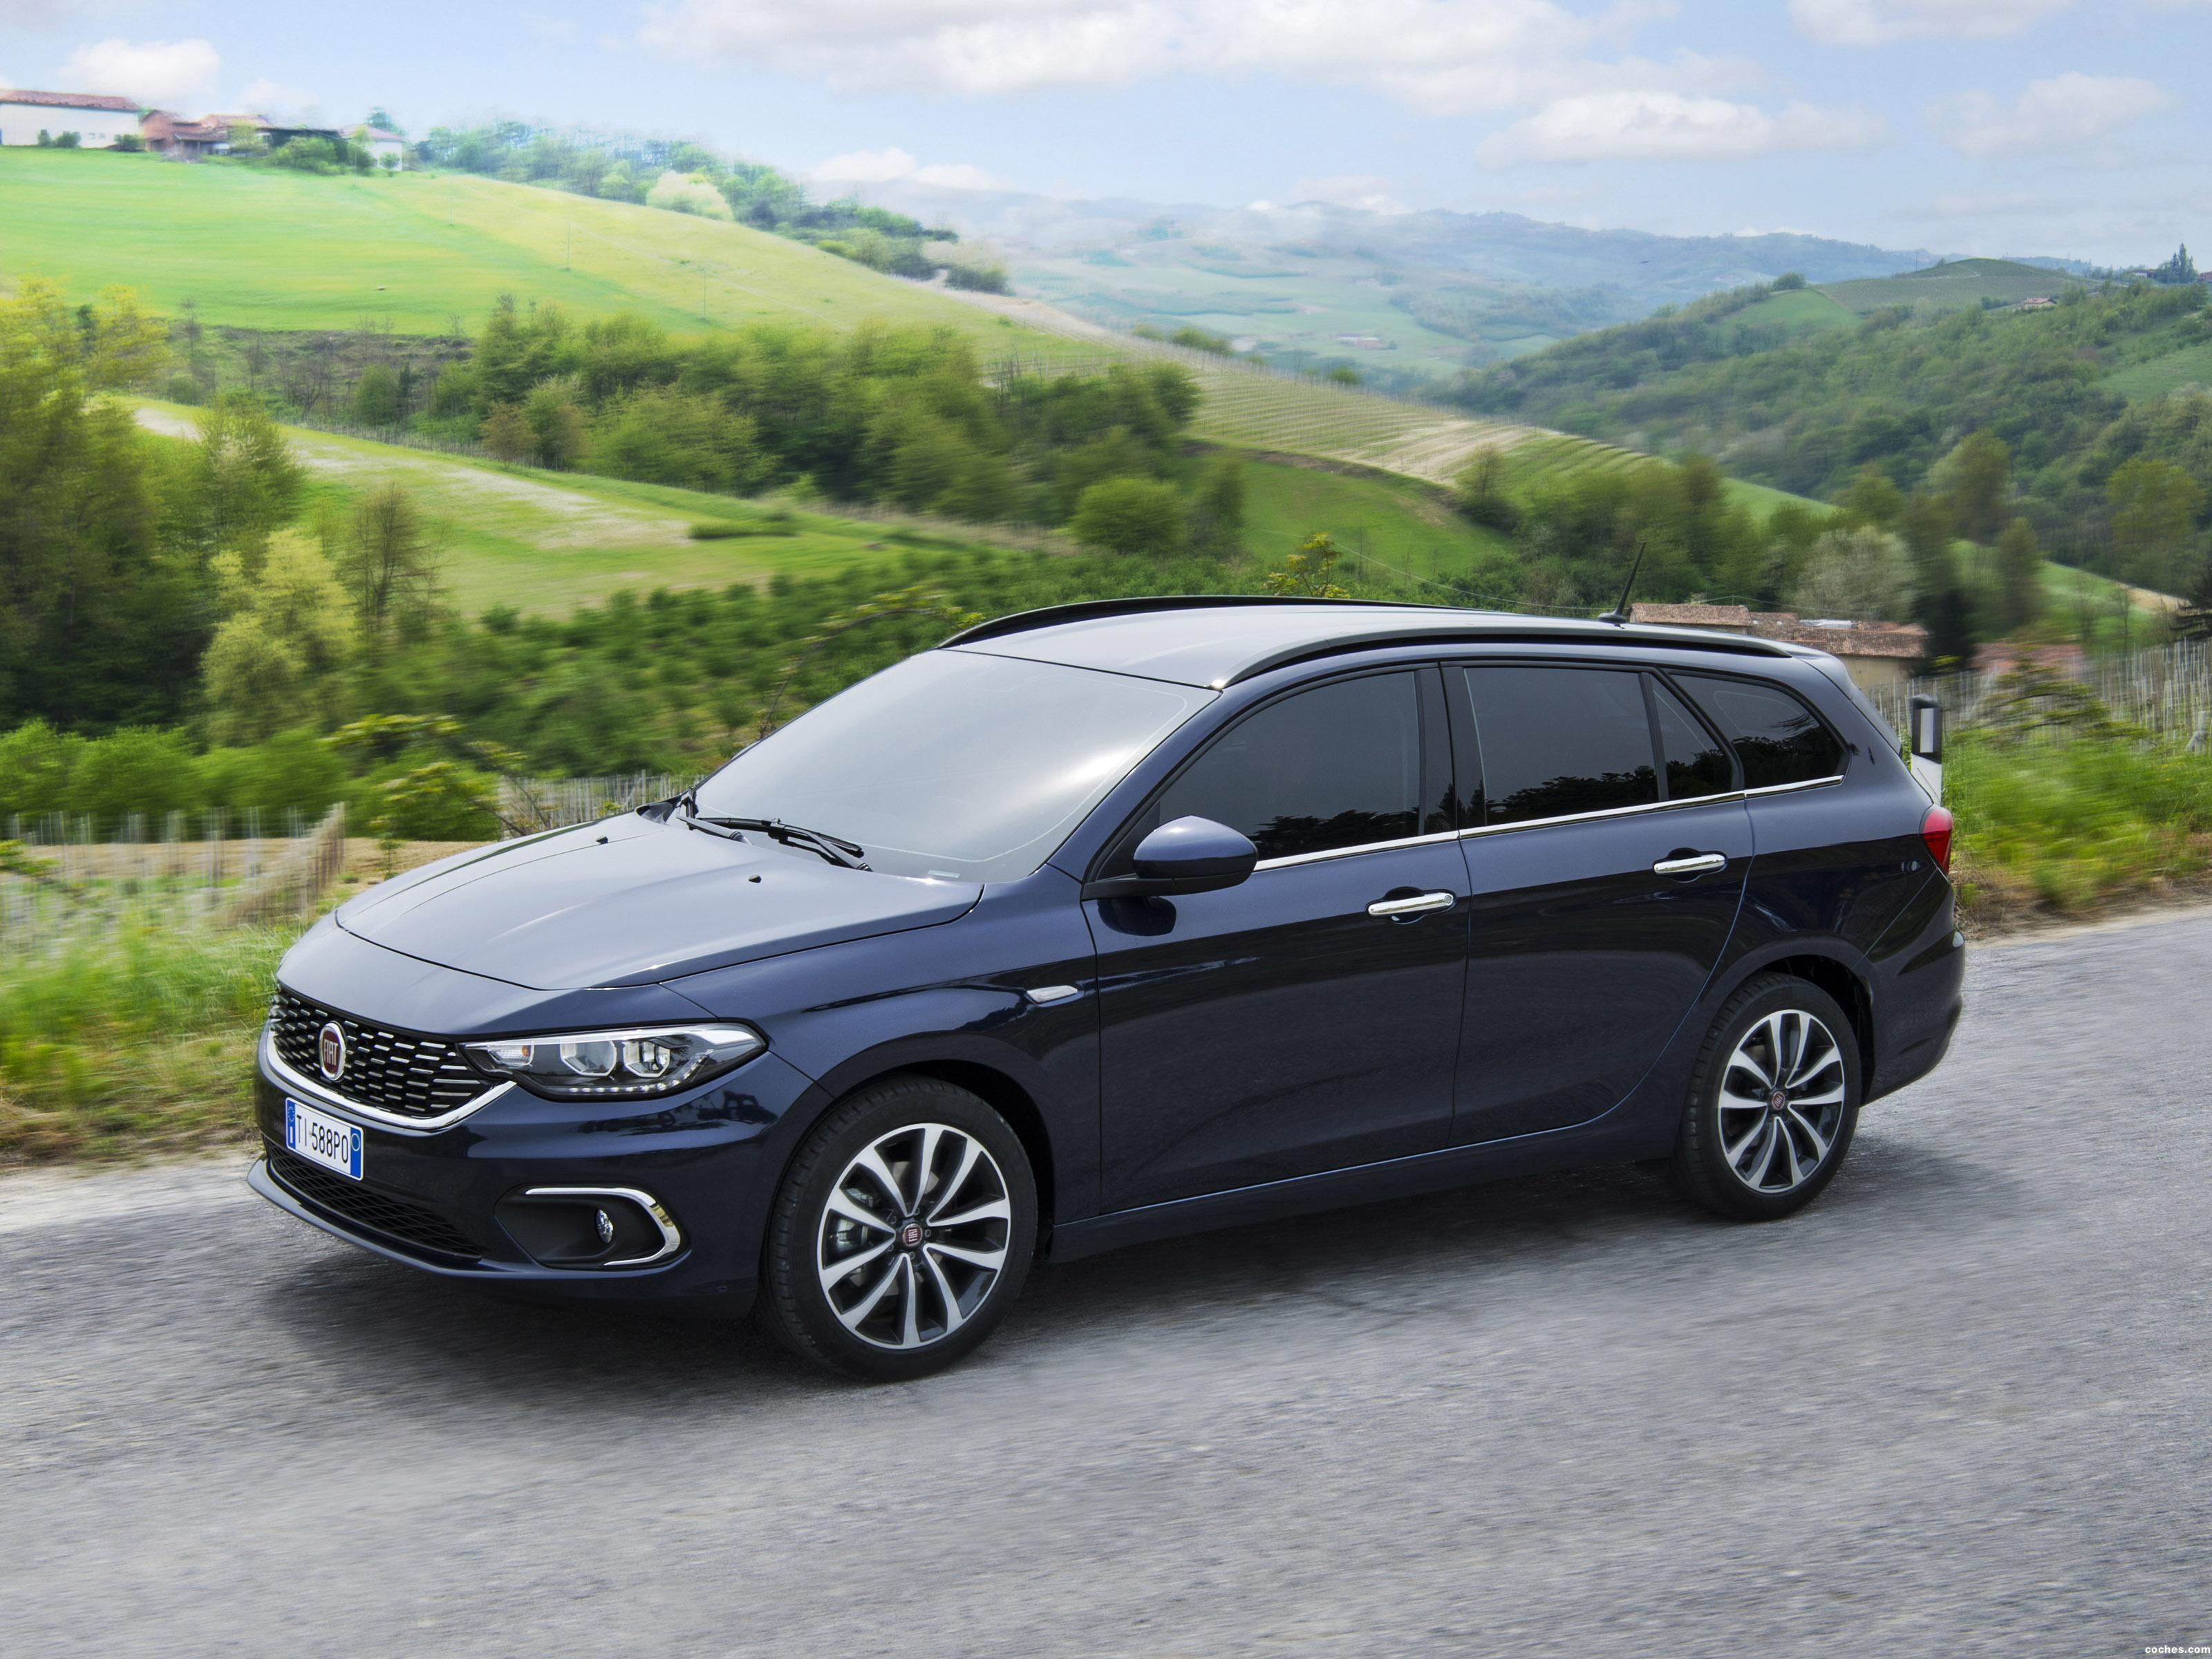 Fiat Tipo Station Wagon 4k big